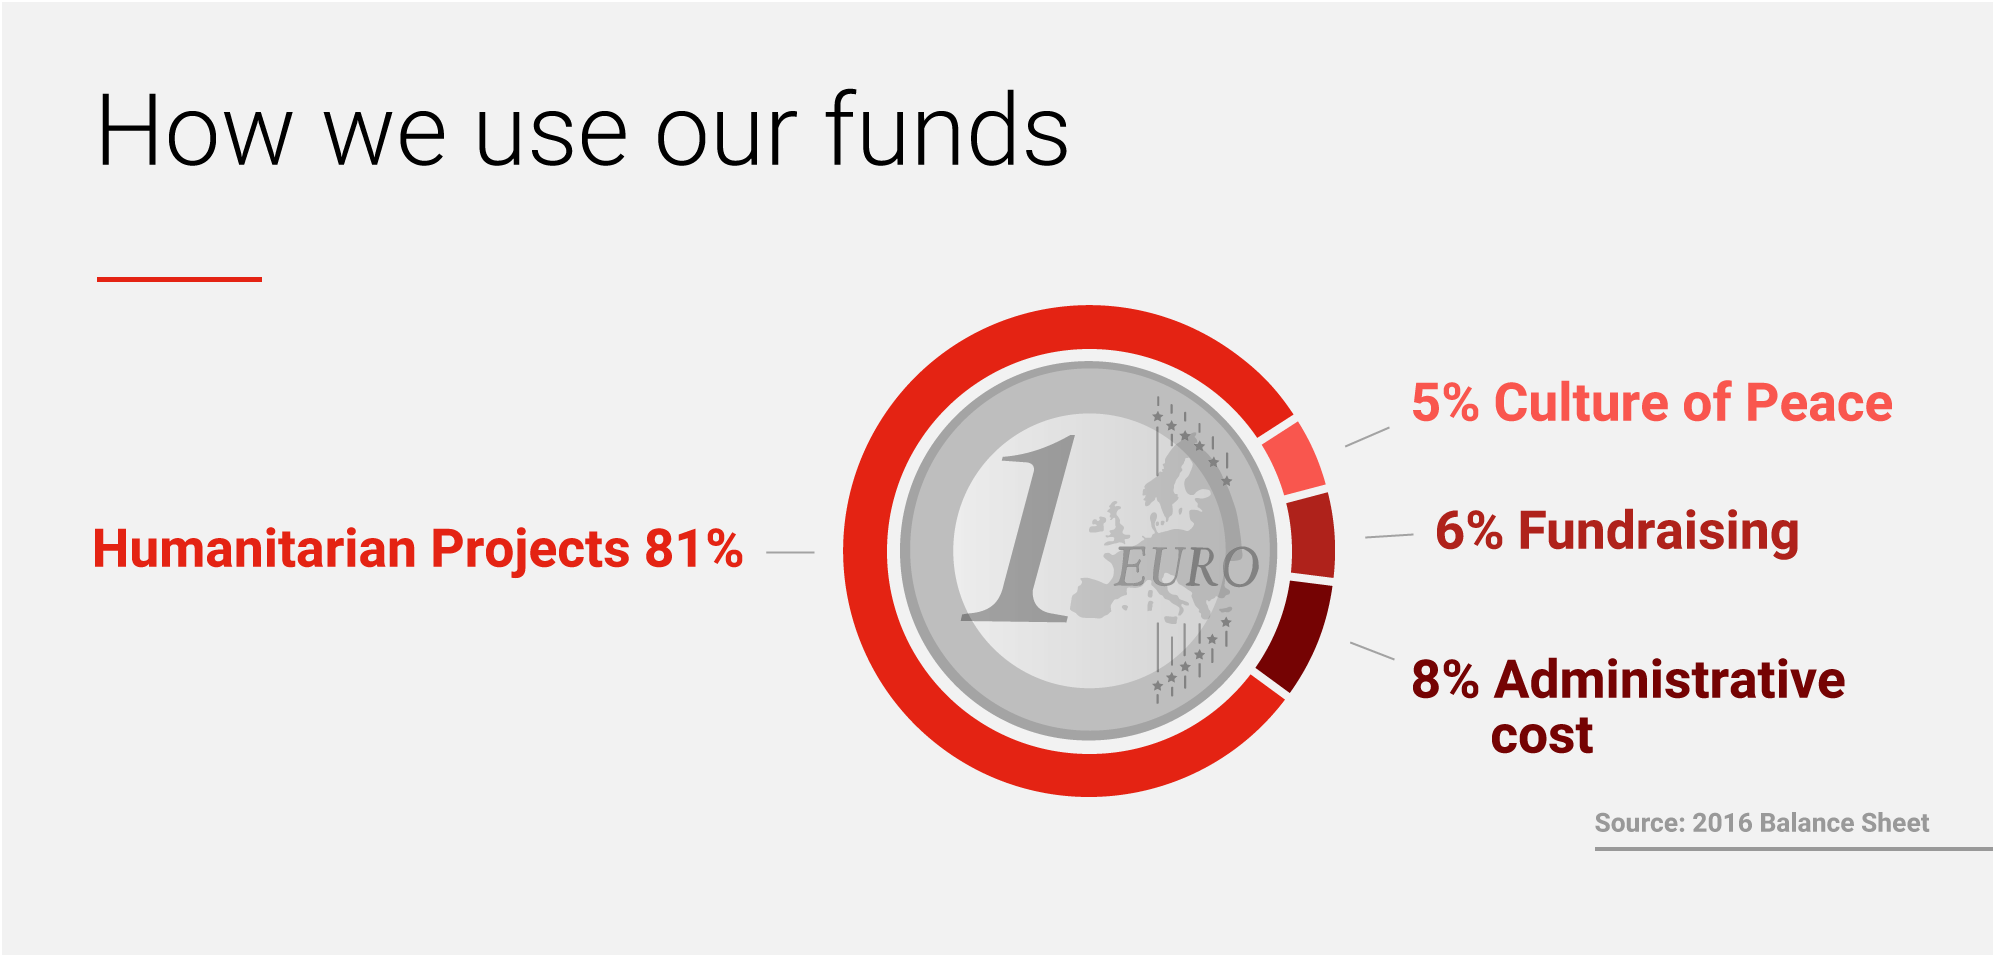 81% goes directly to our Humanitarian projects, 5% is used for Culture of Peace activities, 8% to cover for the facilities. We invest 6% in fundraising. Source: 2016 Balance Sheet.